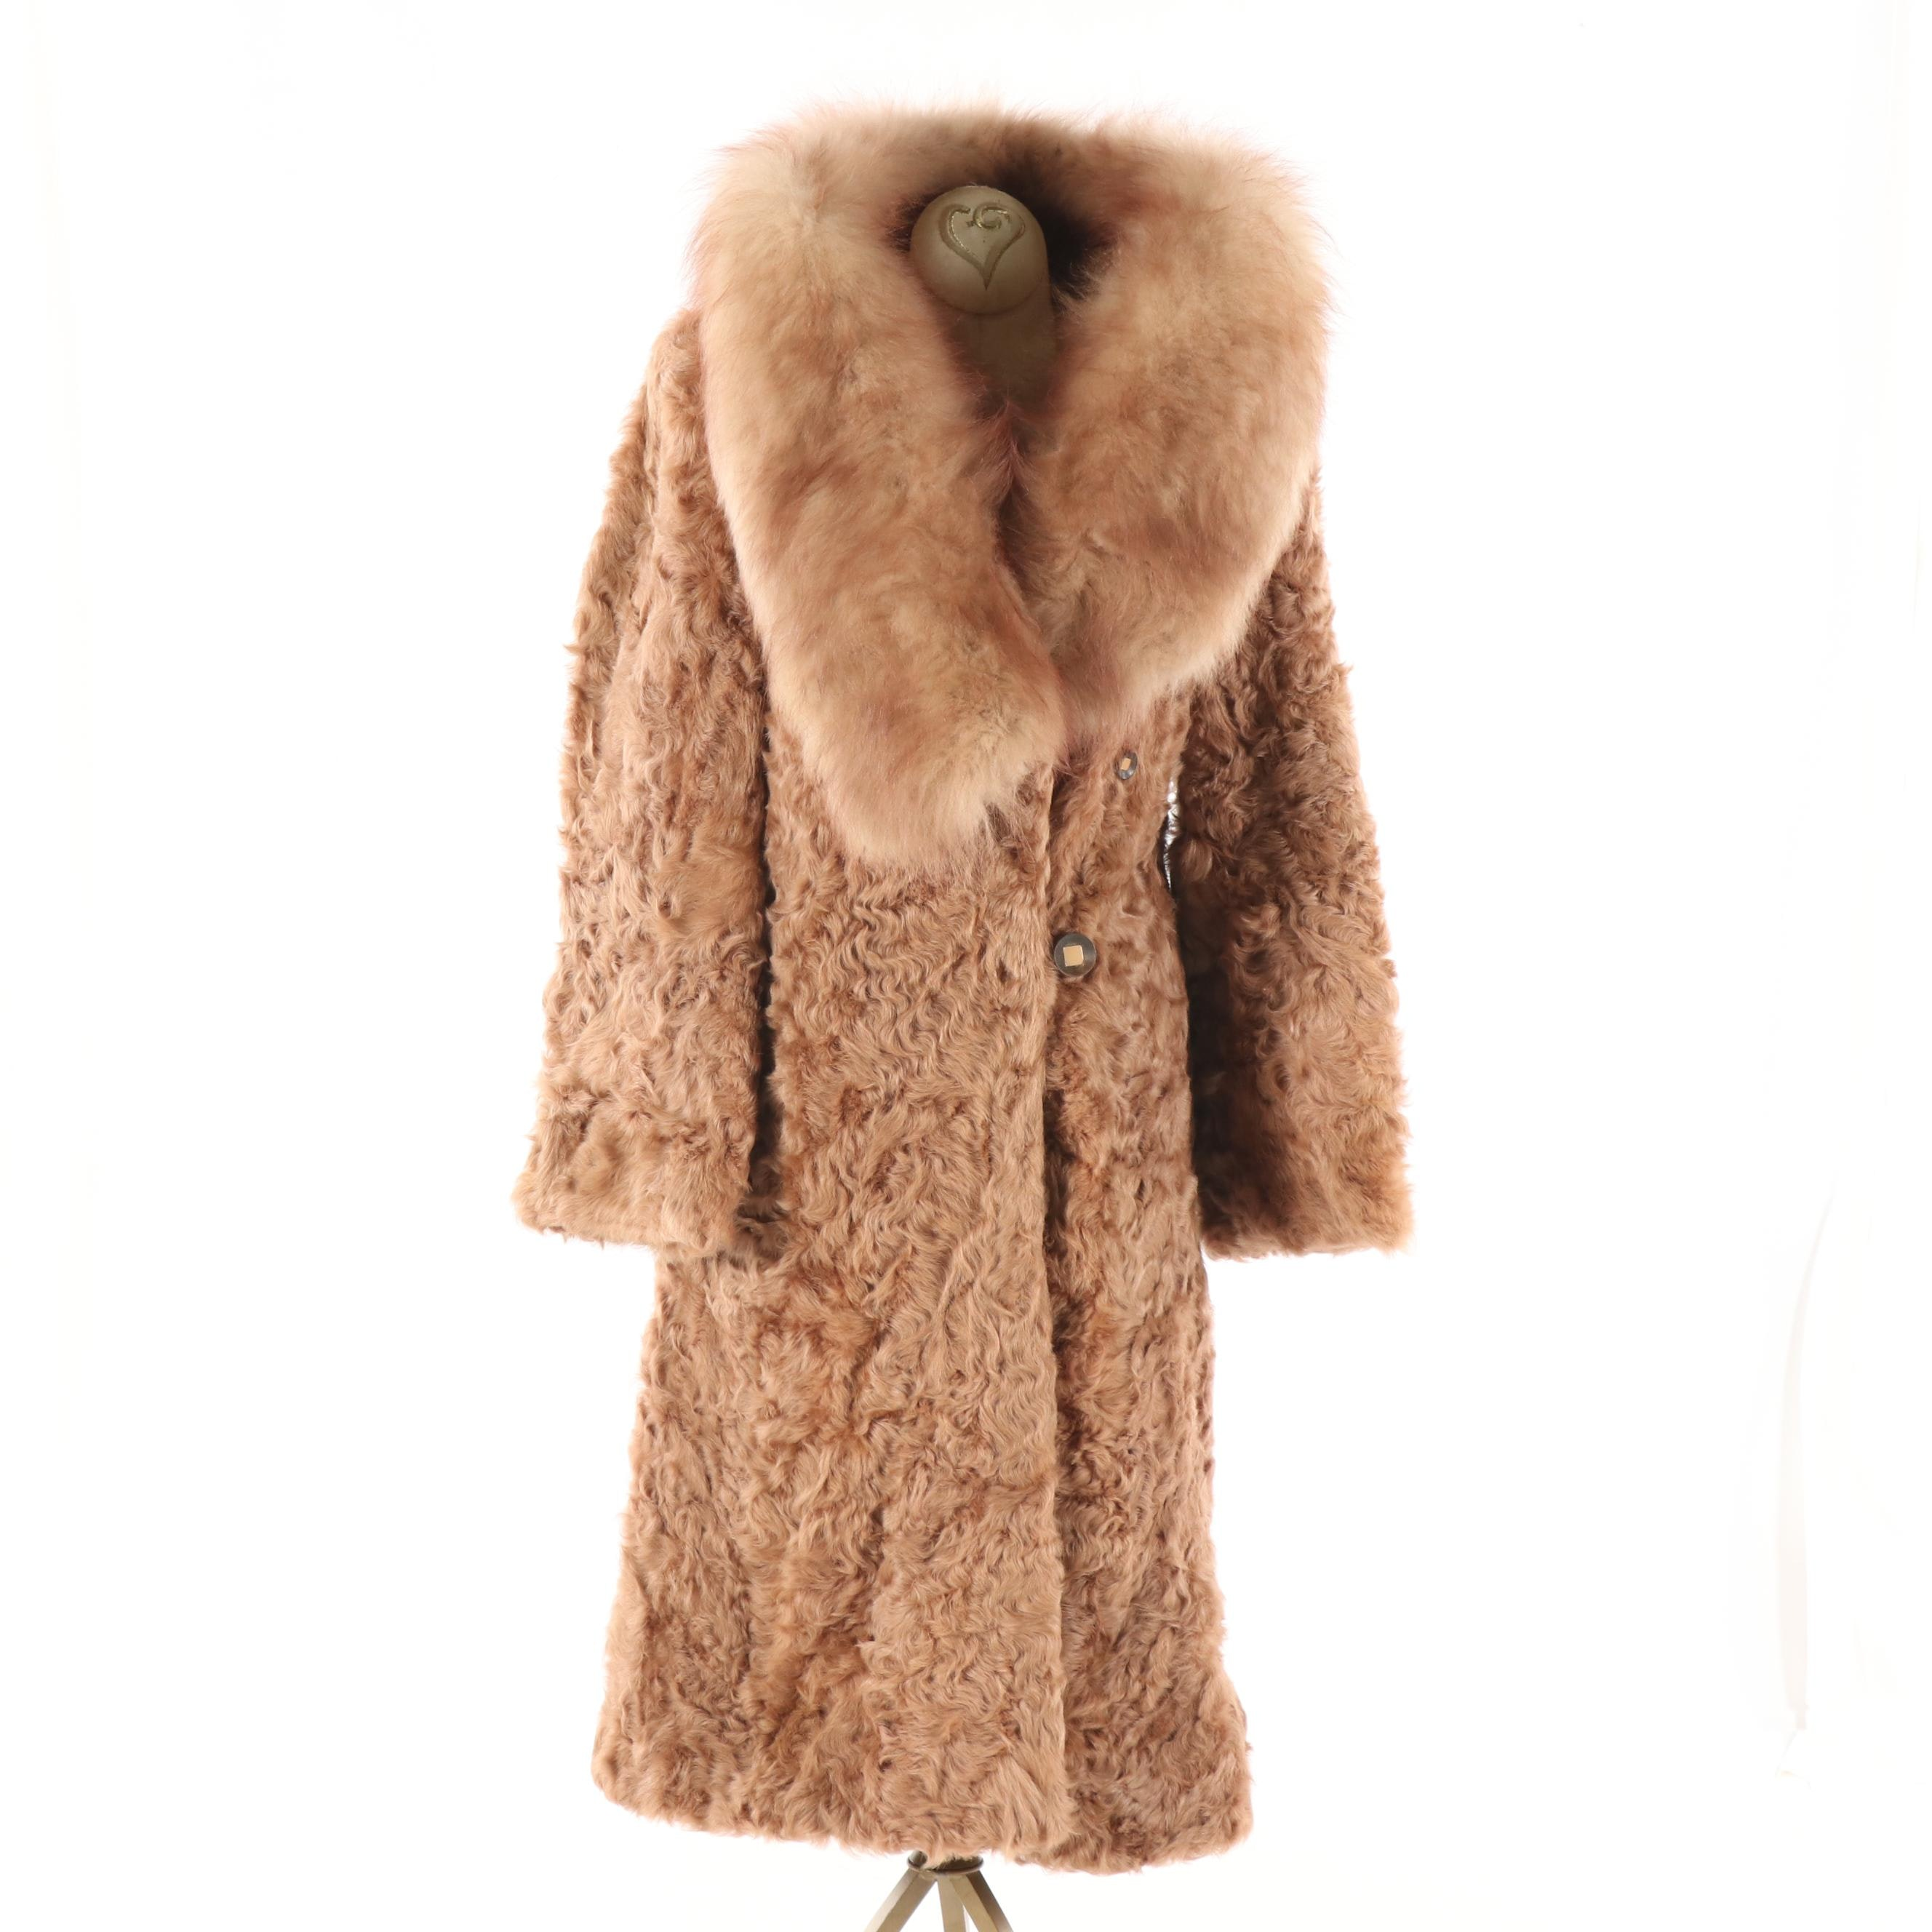 1960s Vintage J.B. Ivey & Co. Tan Persian Lamb Coat with Fur Shawl Collar